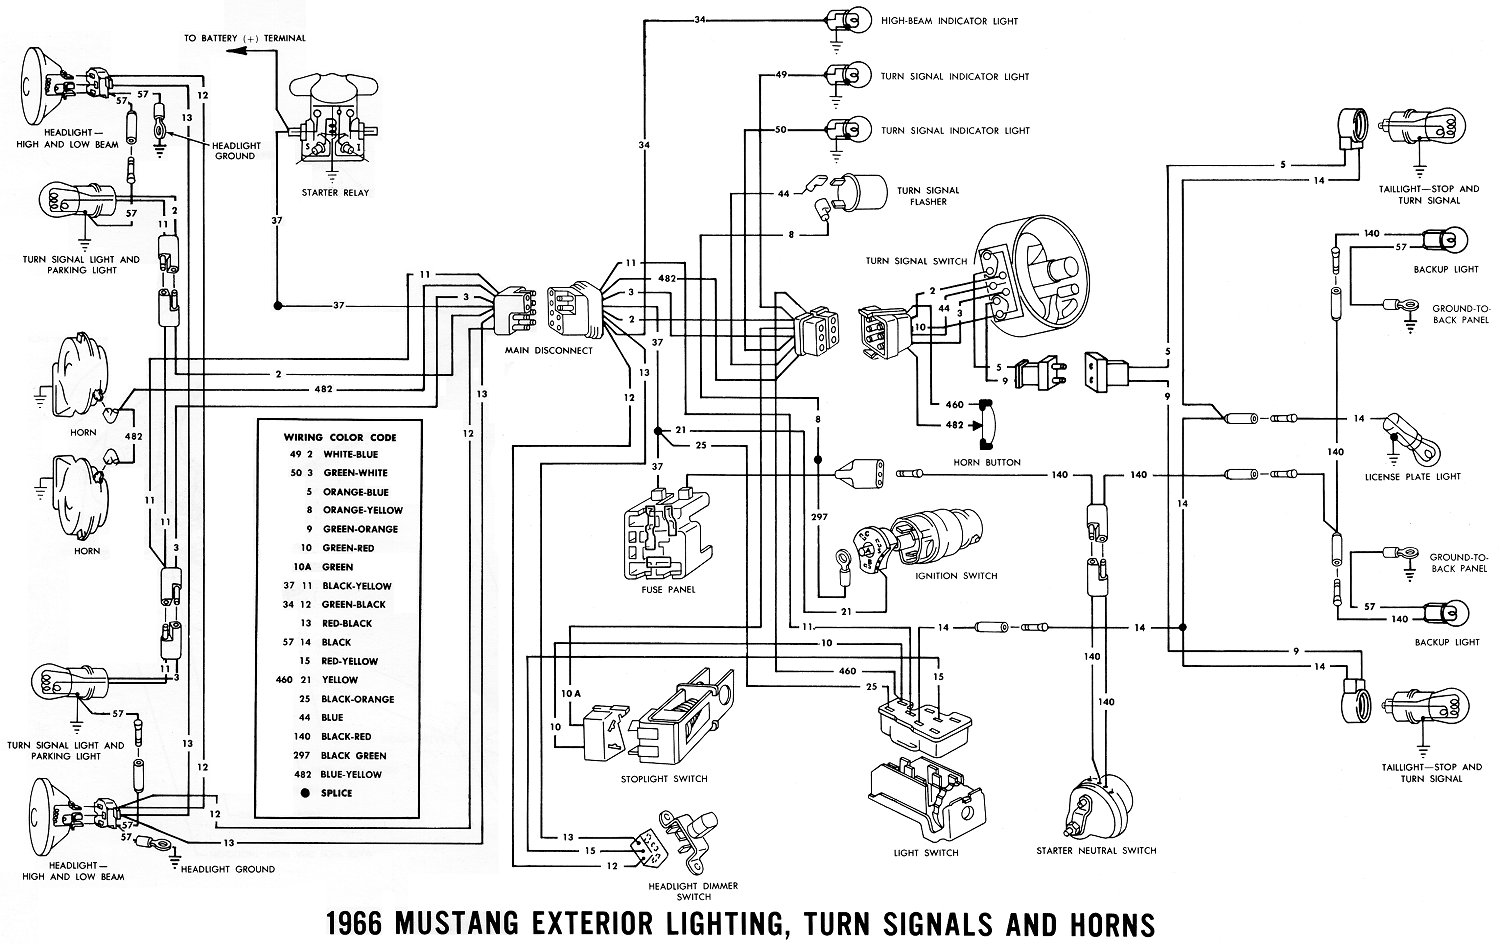 1966 Mustang Exterior Lighting Diagram pictures mustang documents 1968 mustang neutral safety switch wiring diagram at fashall.co